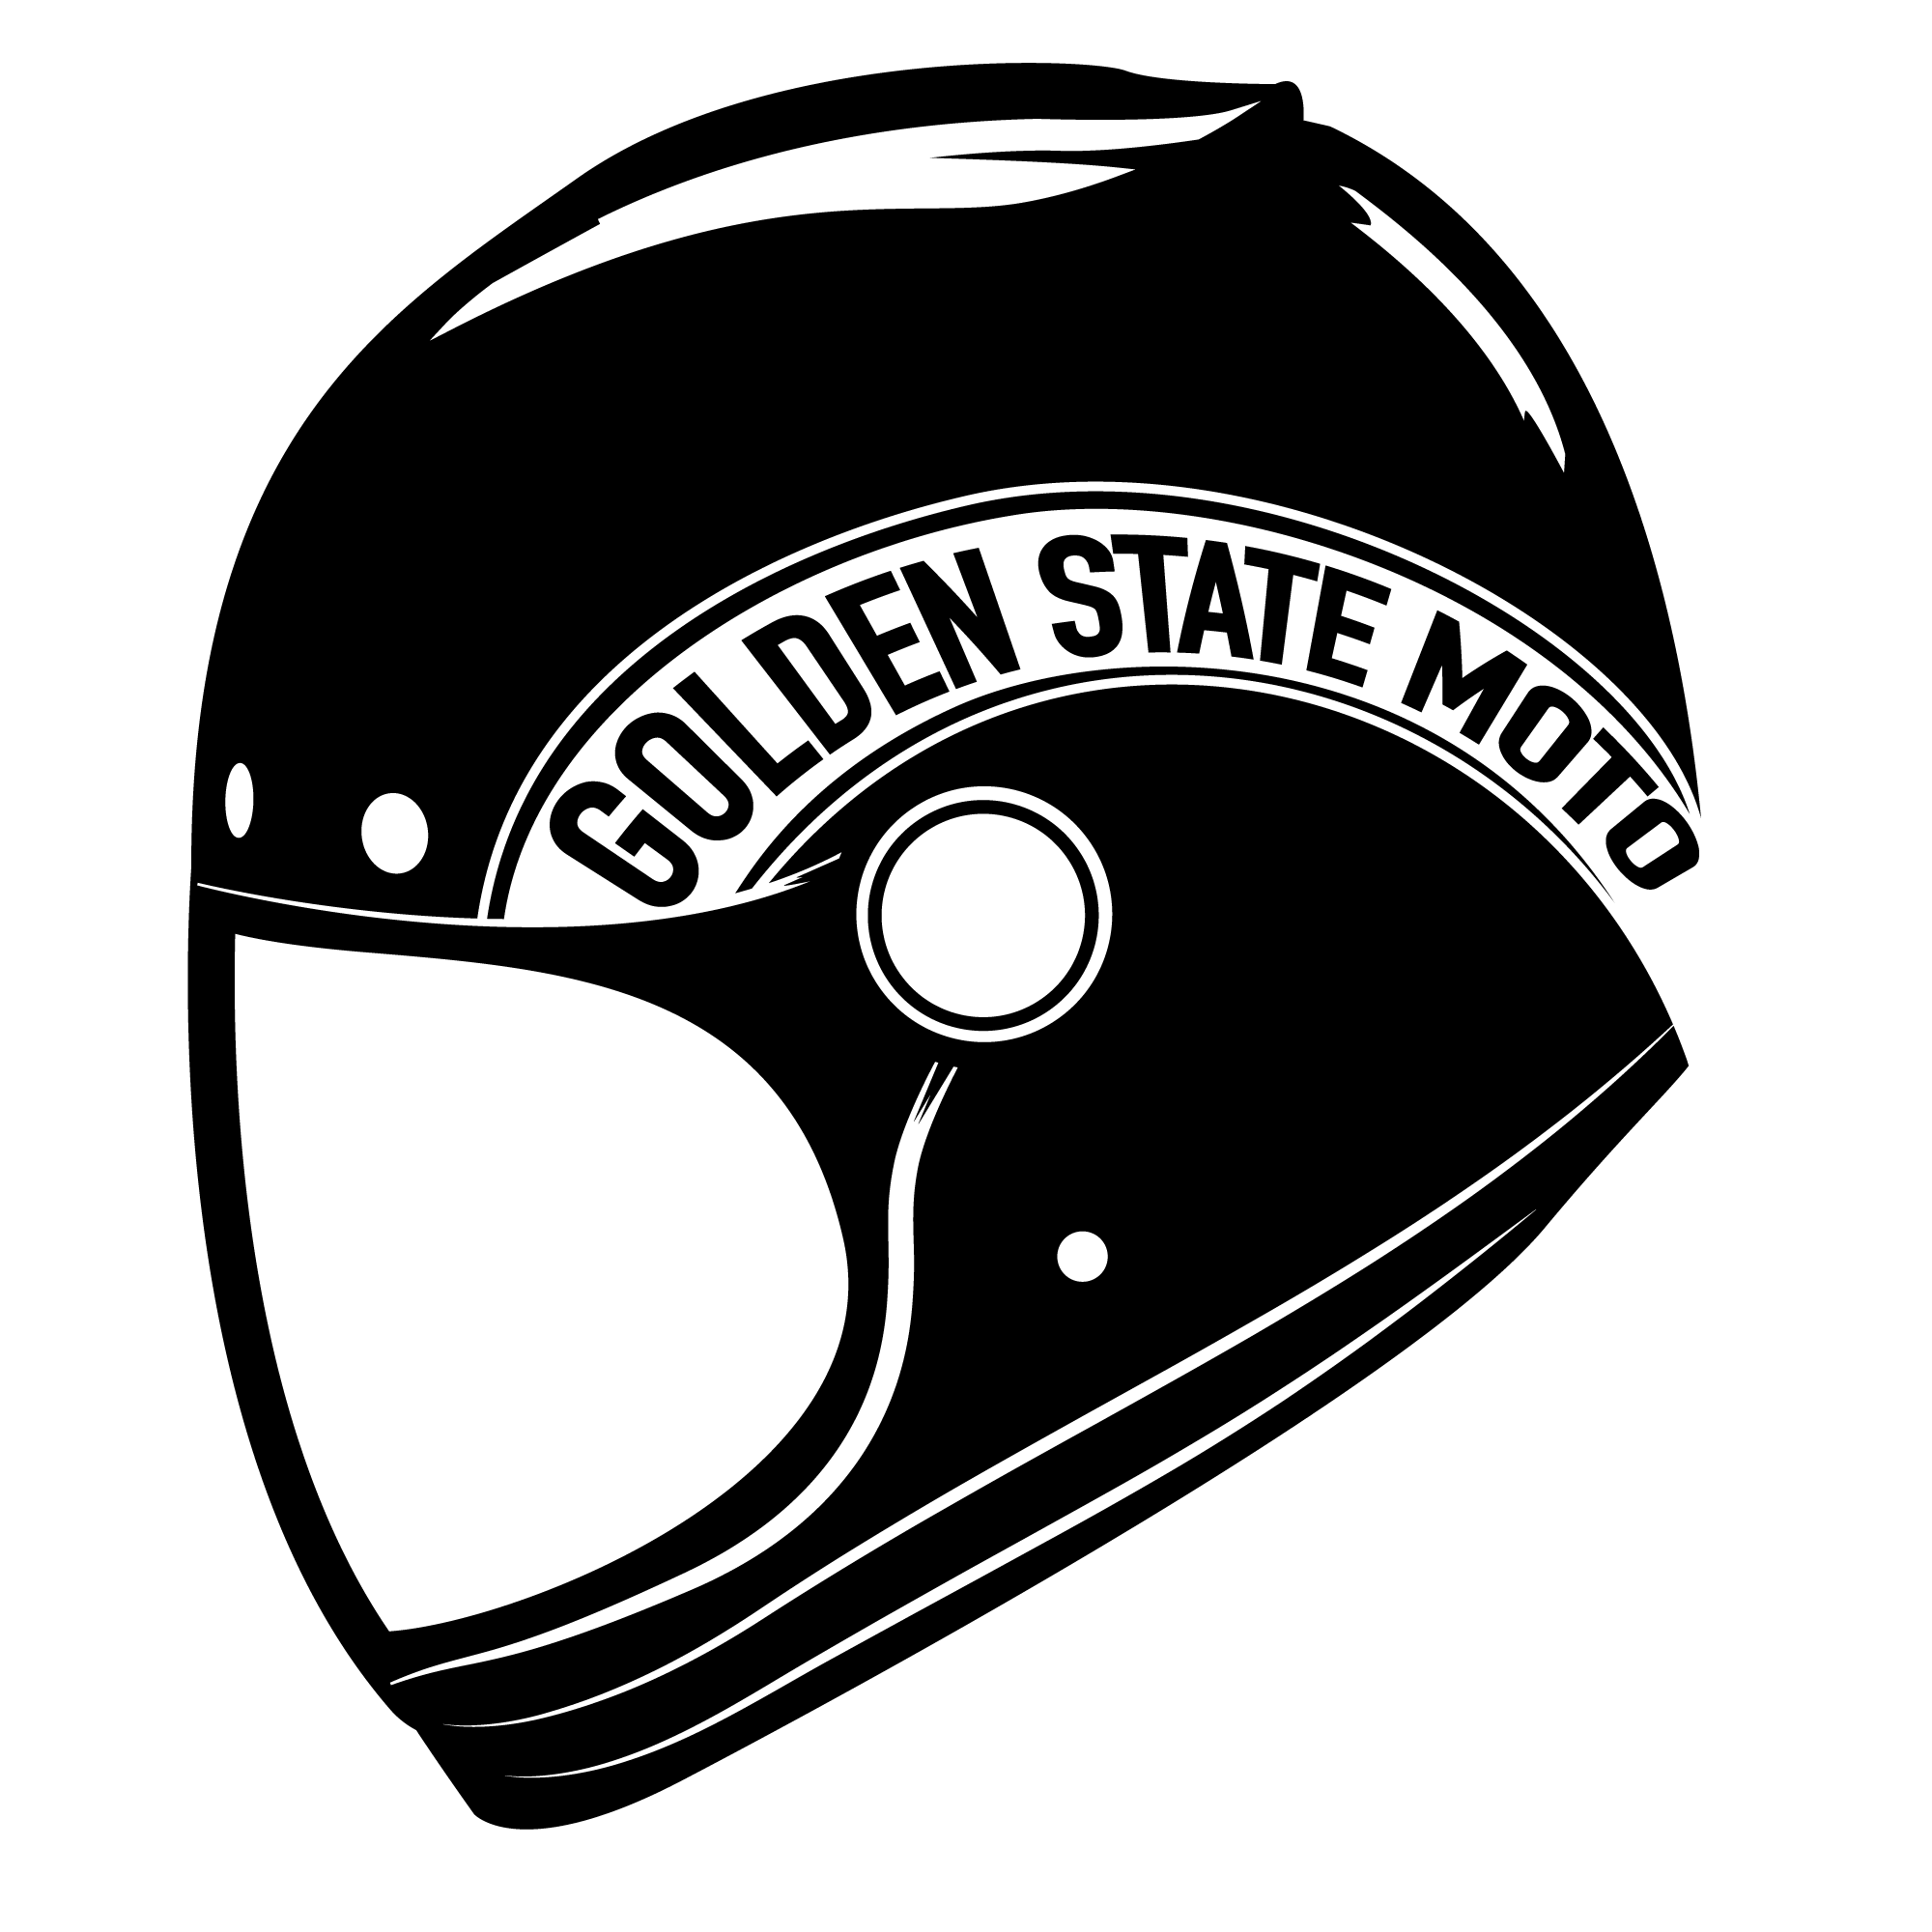 Golden State Moto Riding School